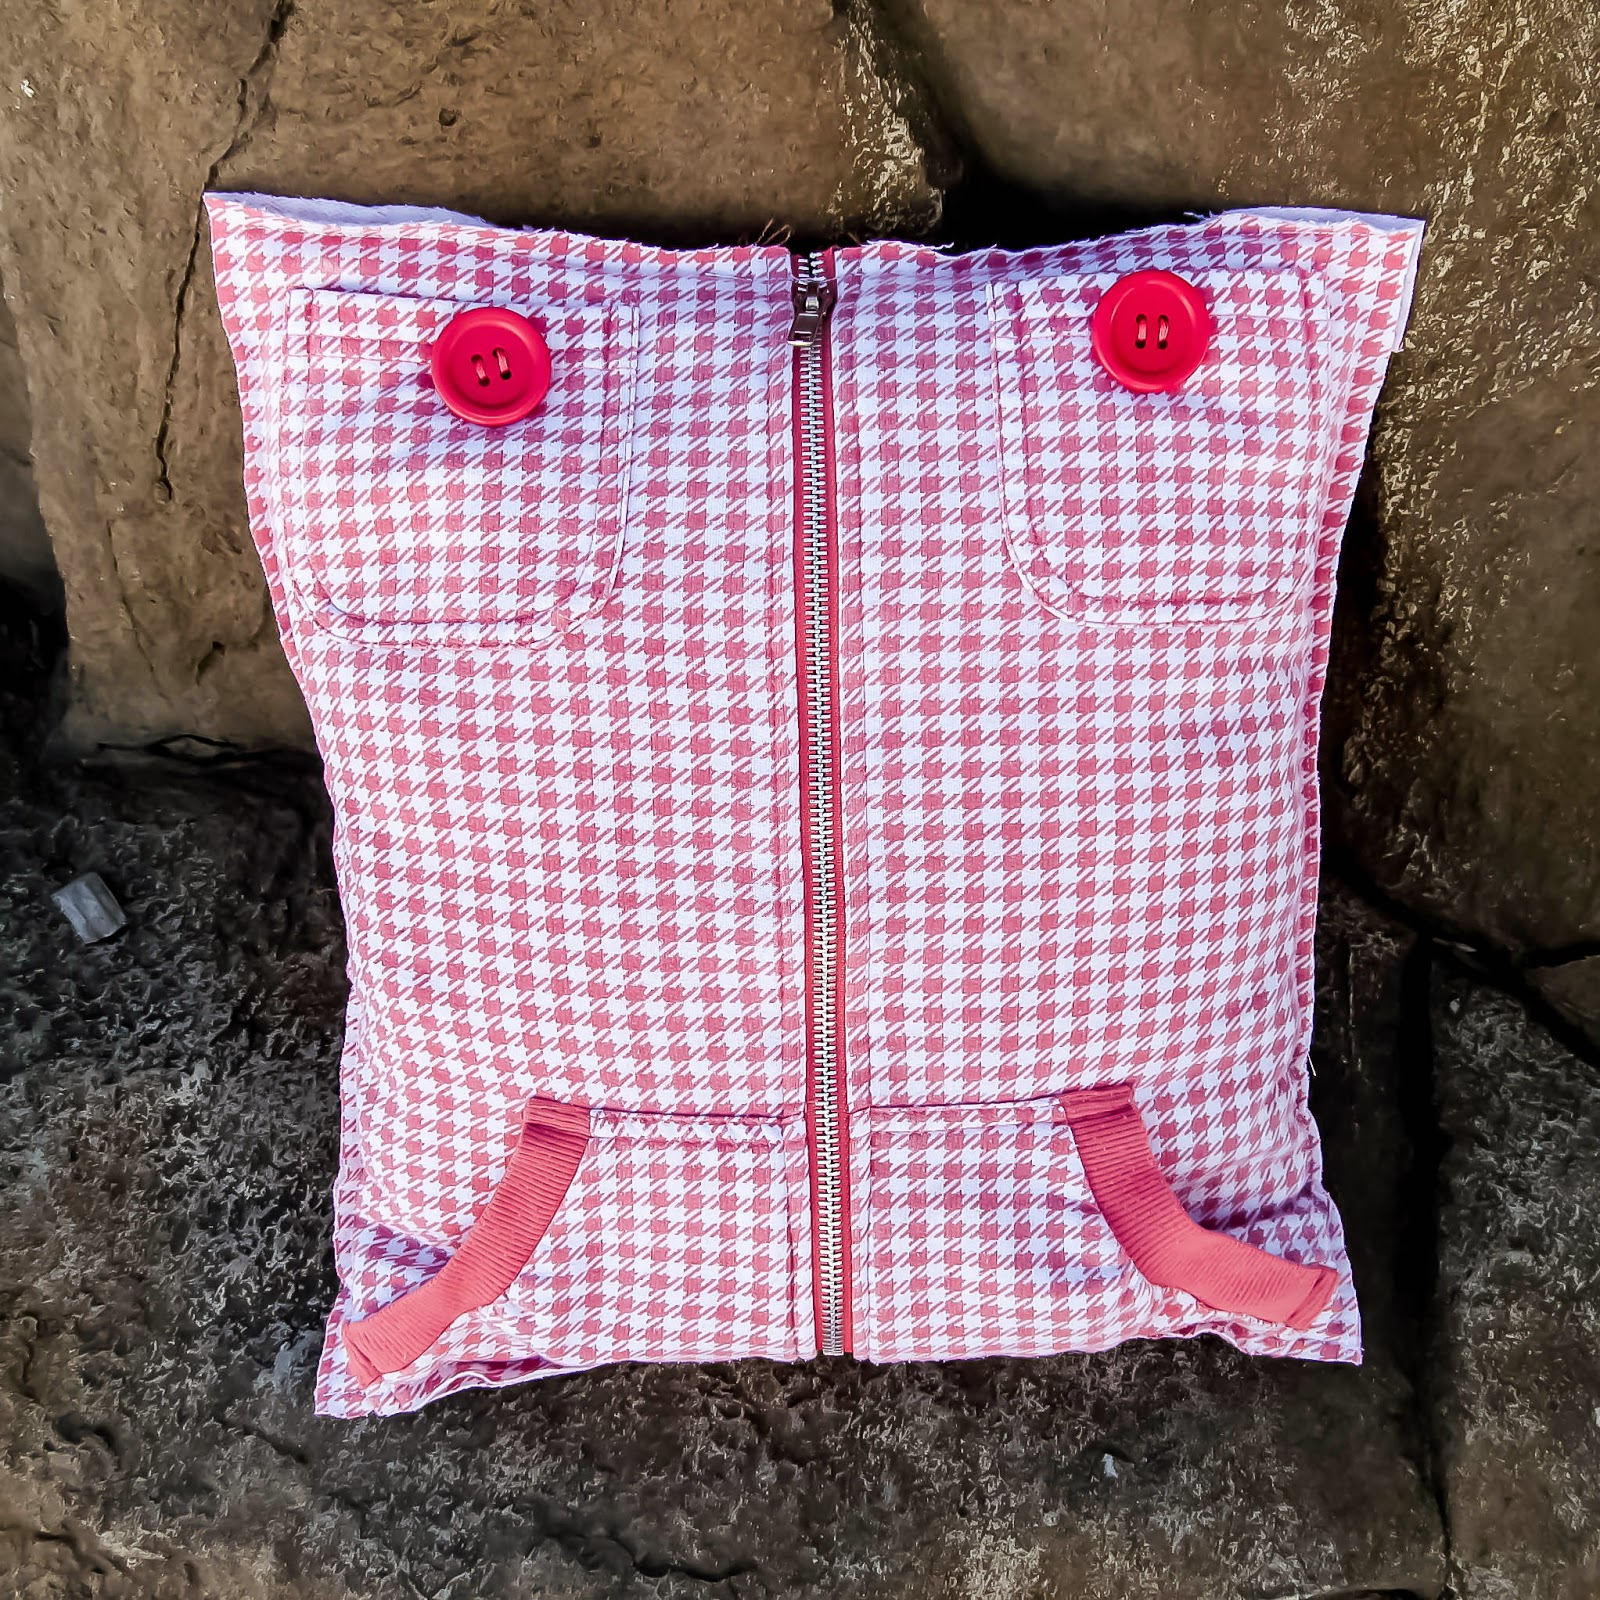 Upcycle hoodies into pillow covers! by Muslin & Merlot